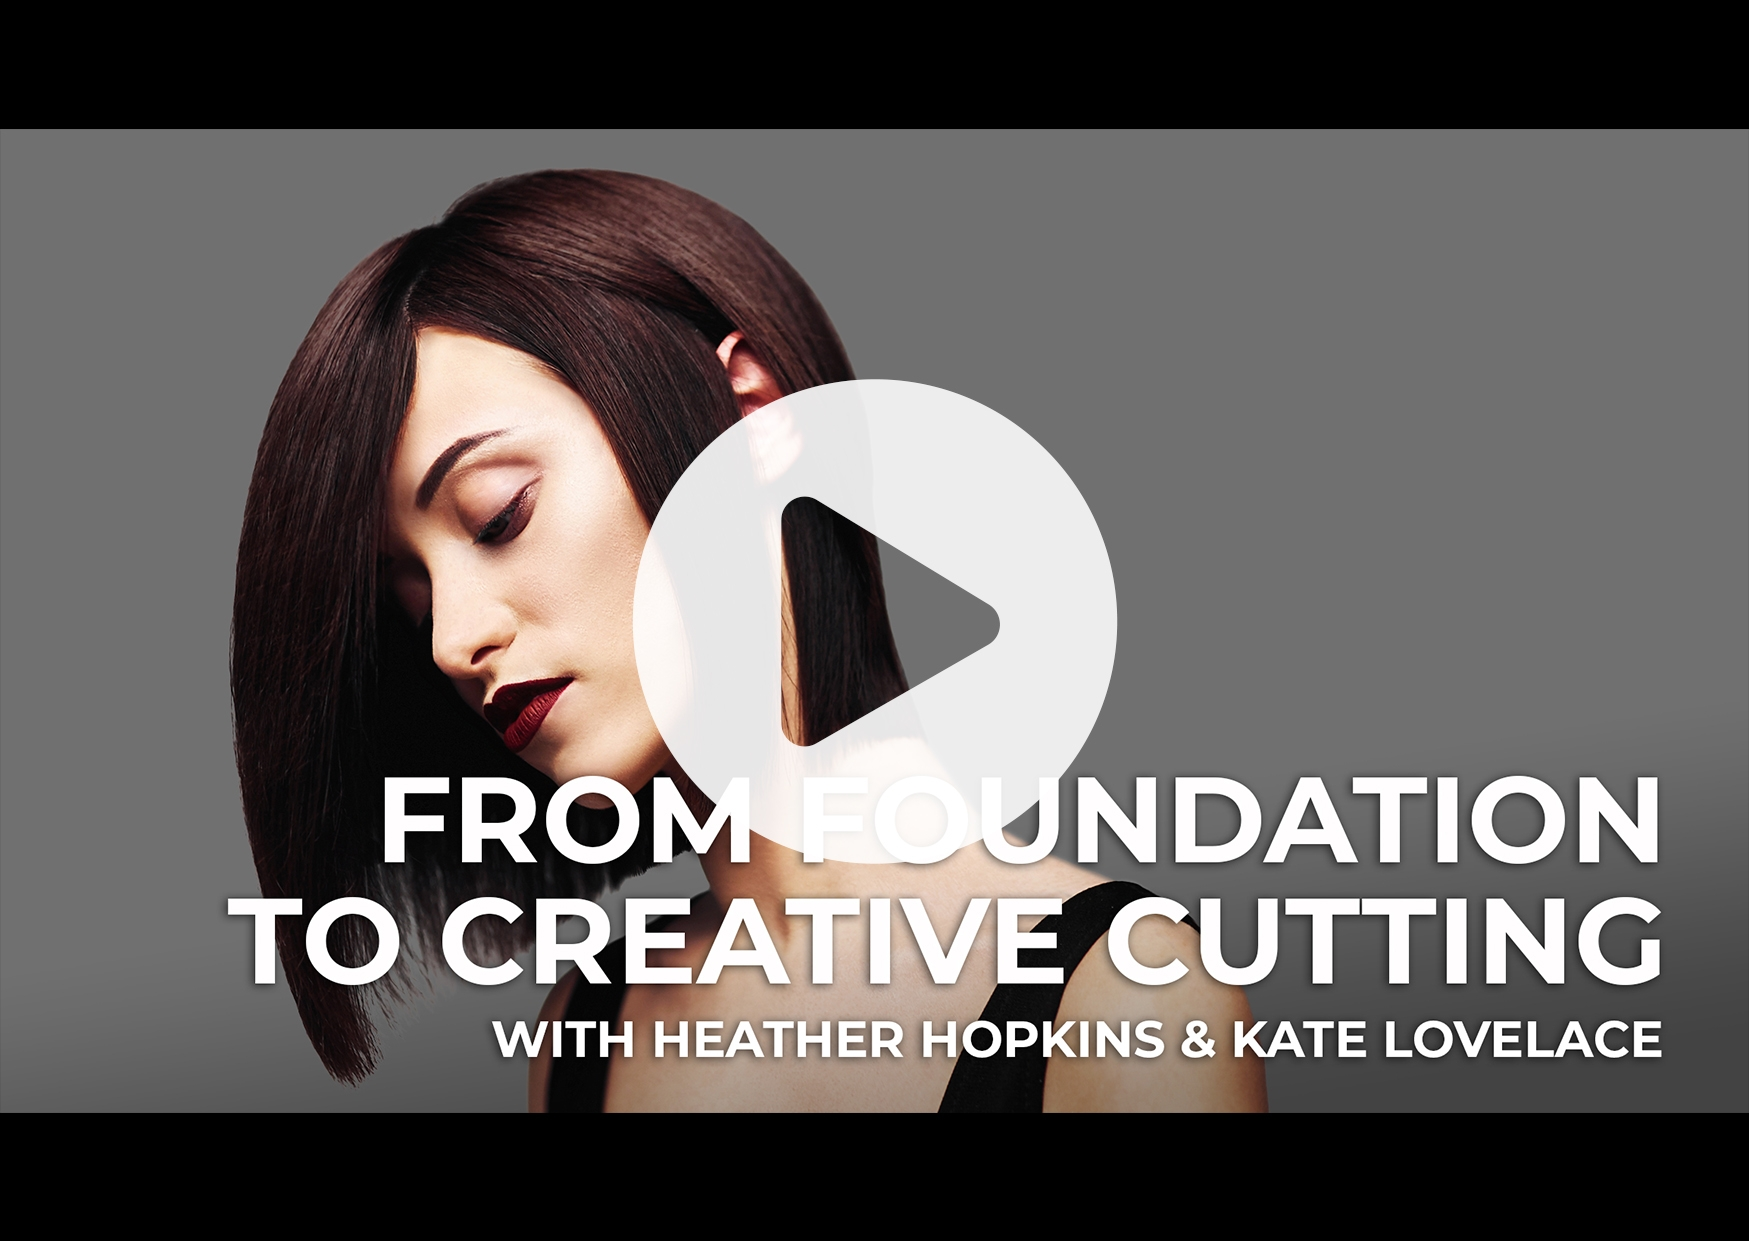 From Foundation to Creative Cutting Session 7